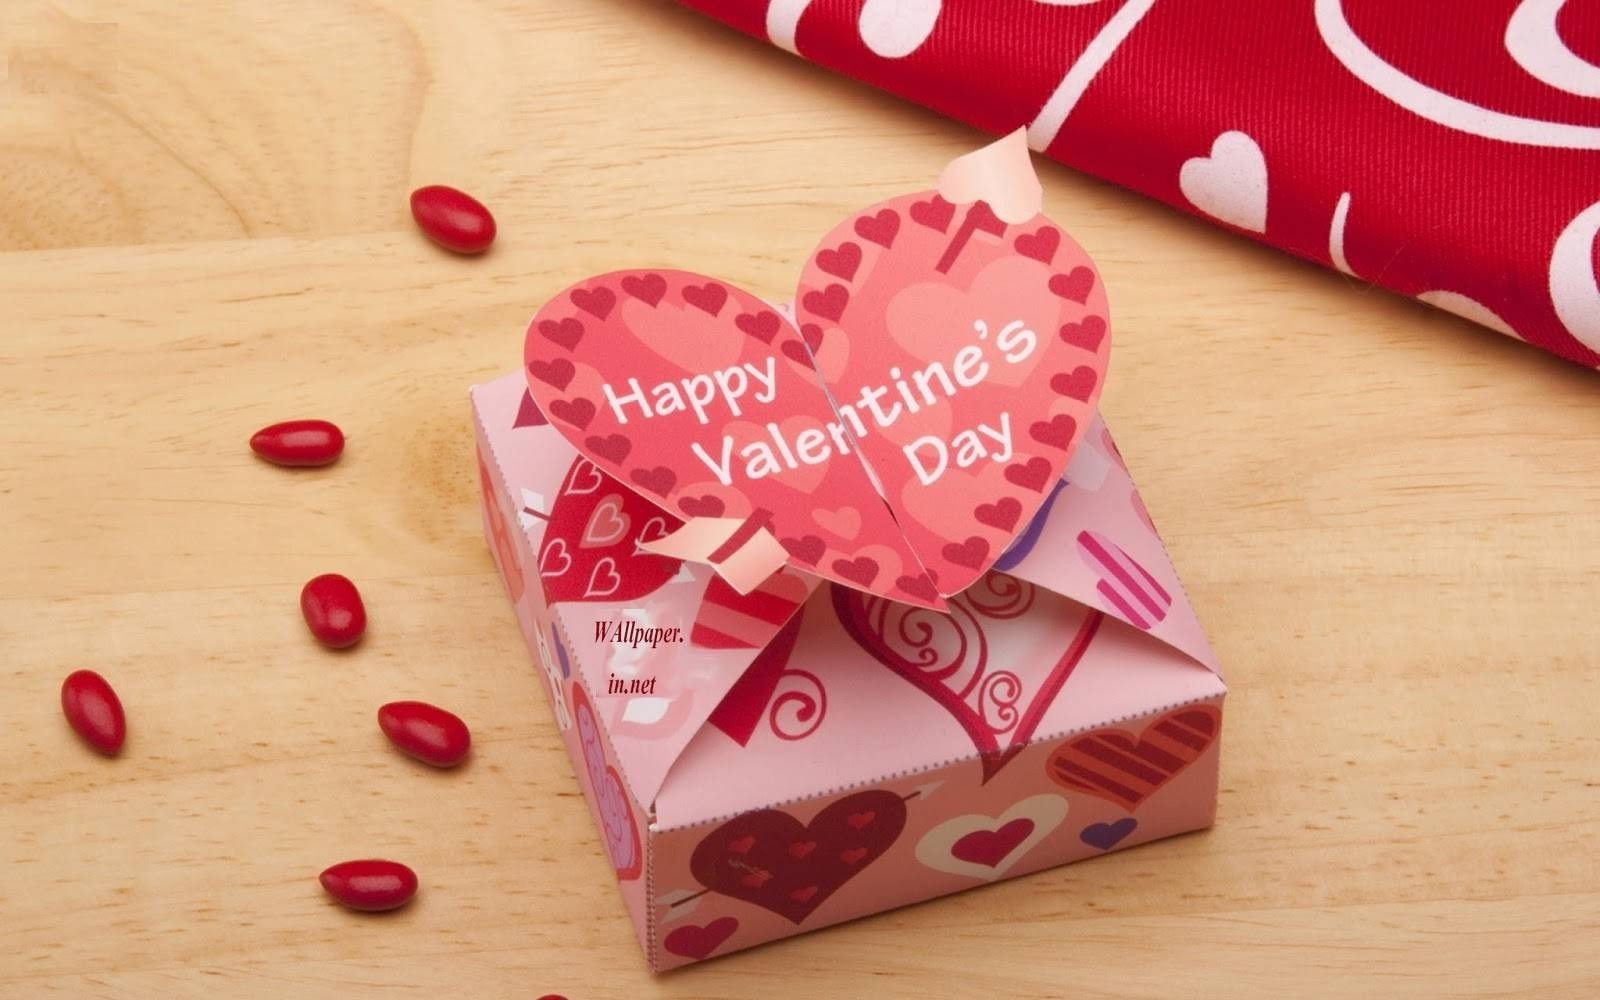 10 Awesome Good Ideas For Valentines Day valentine card ideas for girlfriend good valentines day card ideas 2020